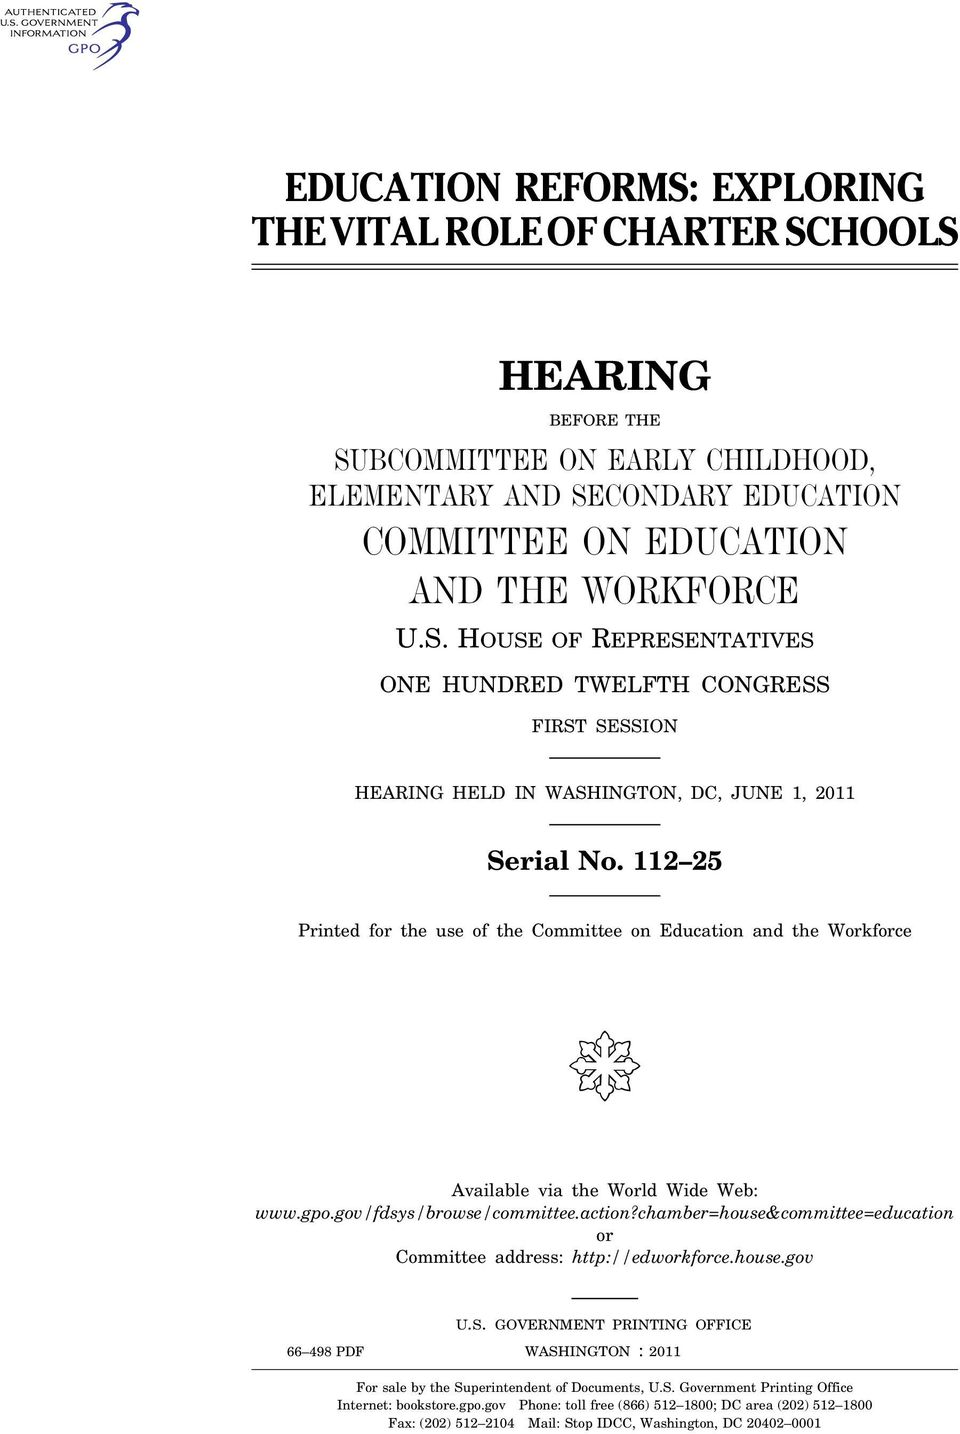 chamber=house&committee=education or Committee address: http://edworkforce.house.gov U.S. GOVERNMENT PRINTING OFFICE 66 498 PDF WASHINGTON : 2011 For sale by the Superintendent of Documents, U.S. Government Printing Office Internet: bookstore.